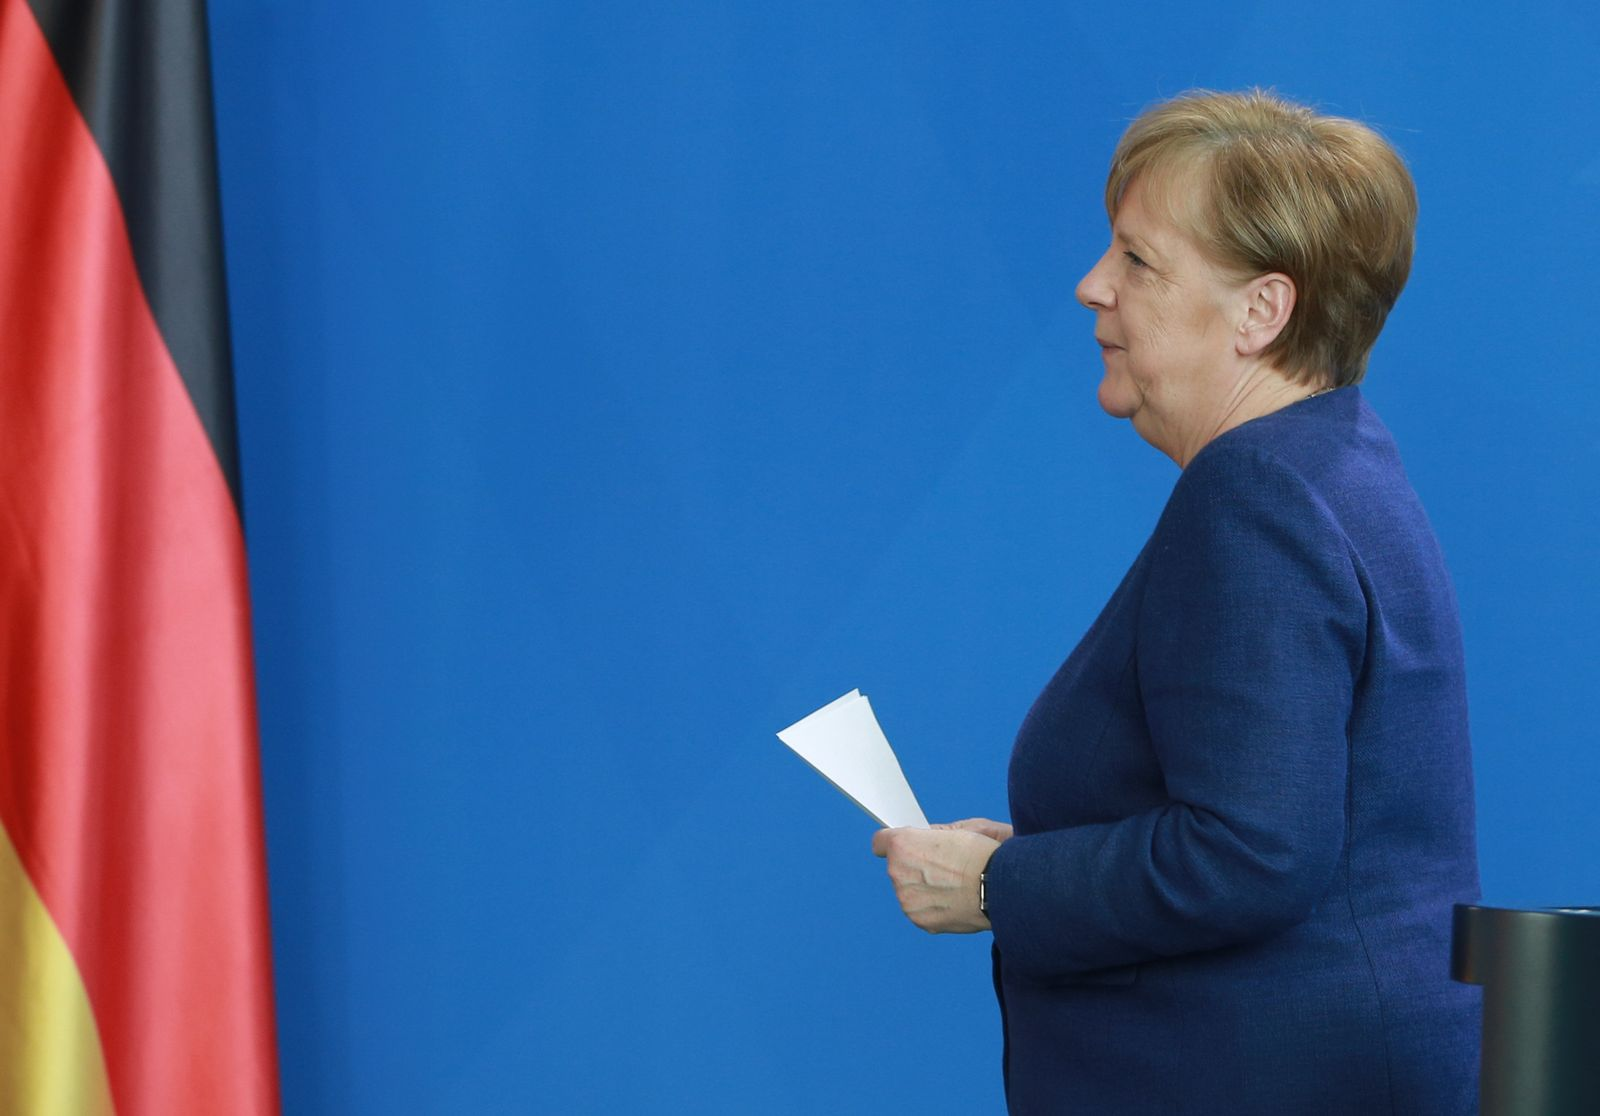 Merkel Makes First Public Appearance Since Quarantine Release, Speaks On Crisis Policies